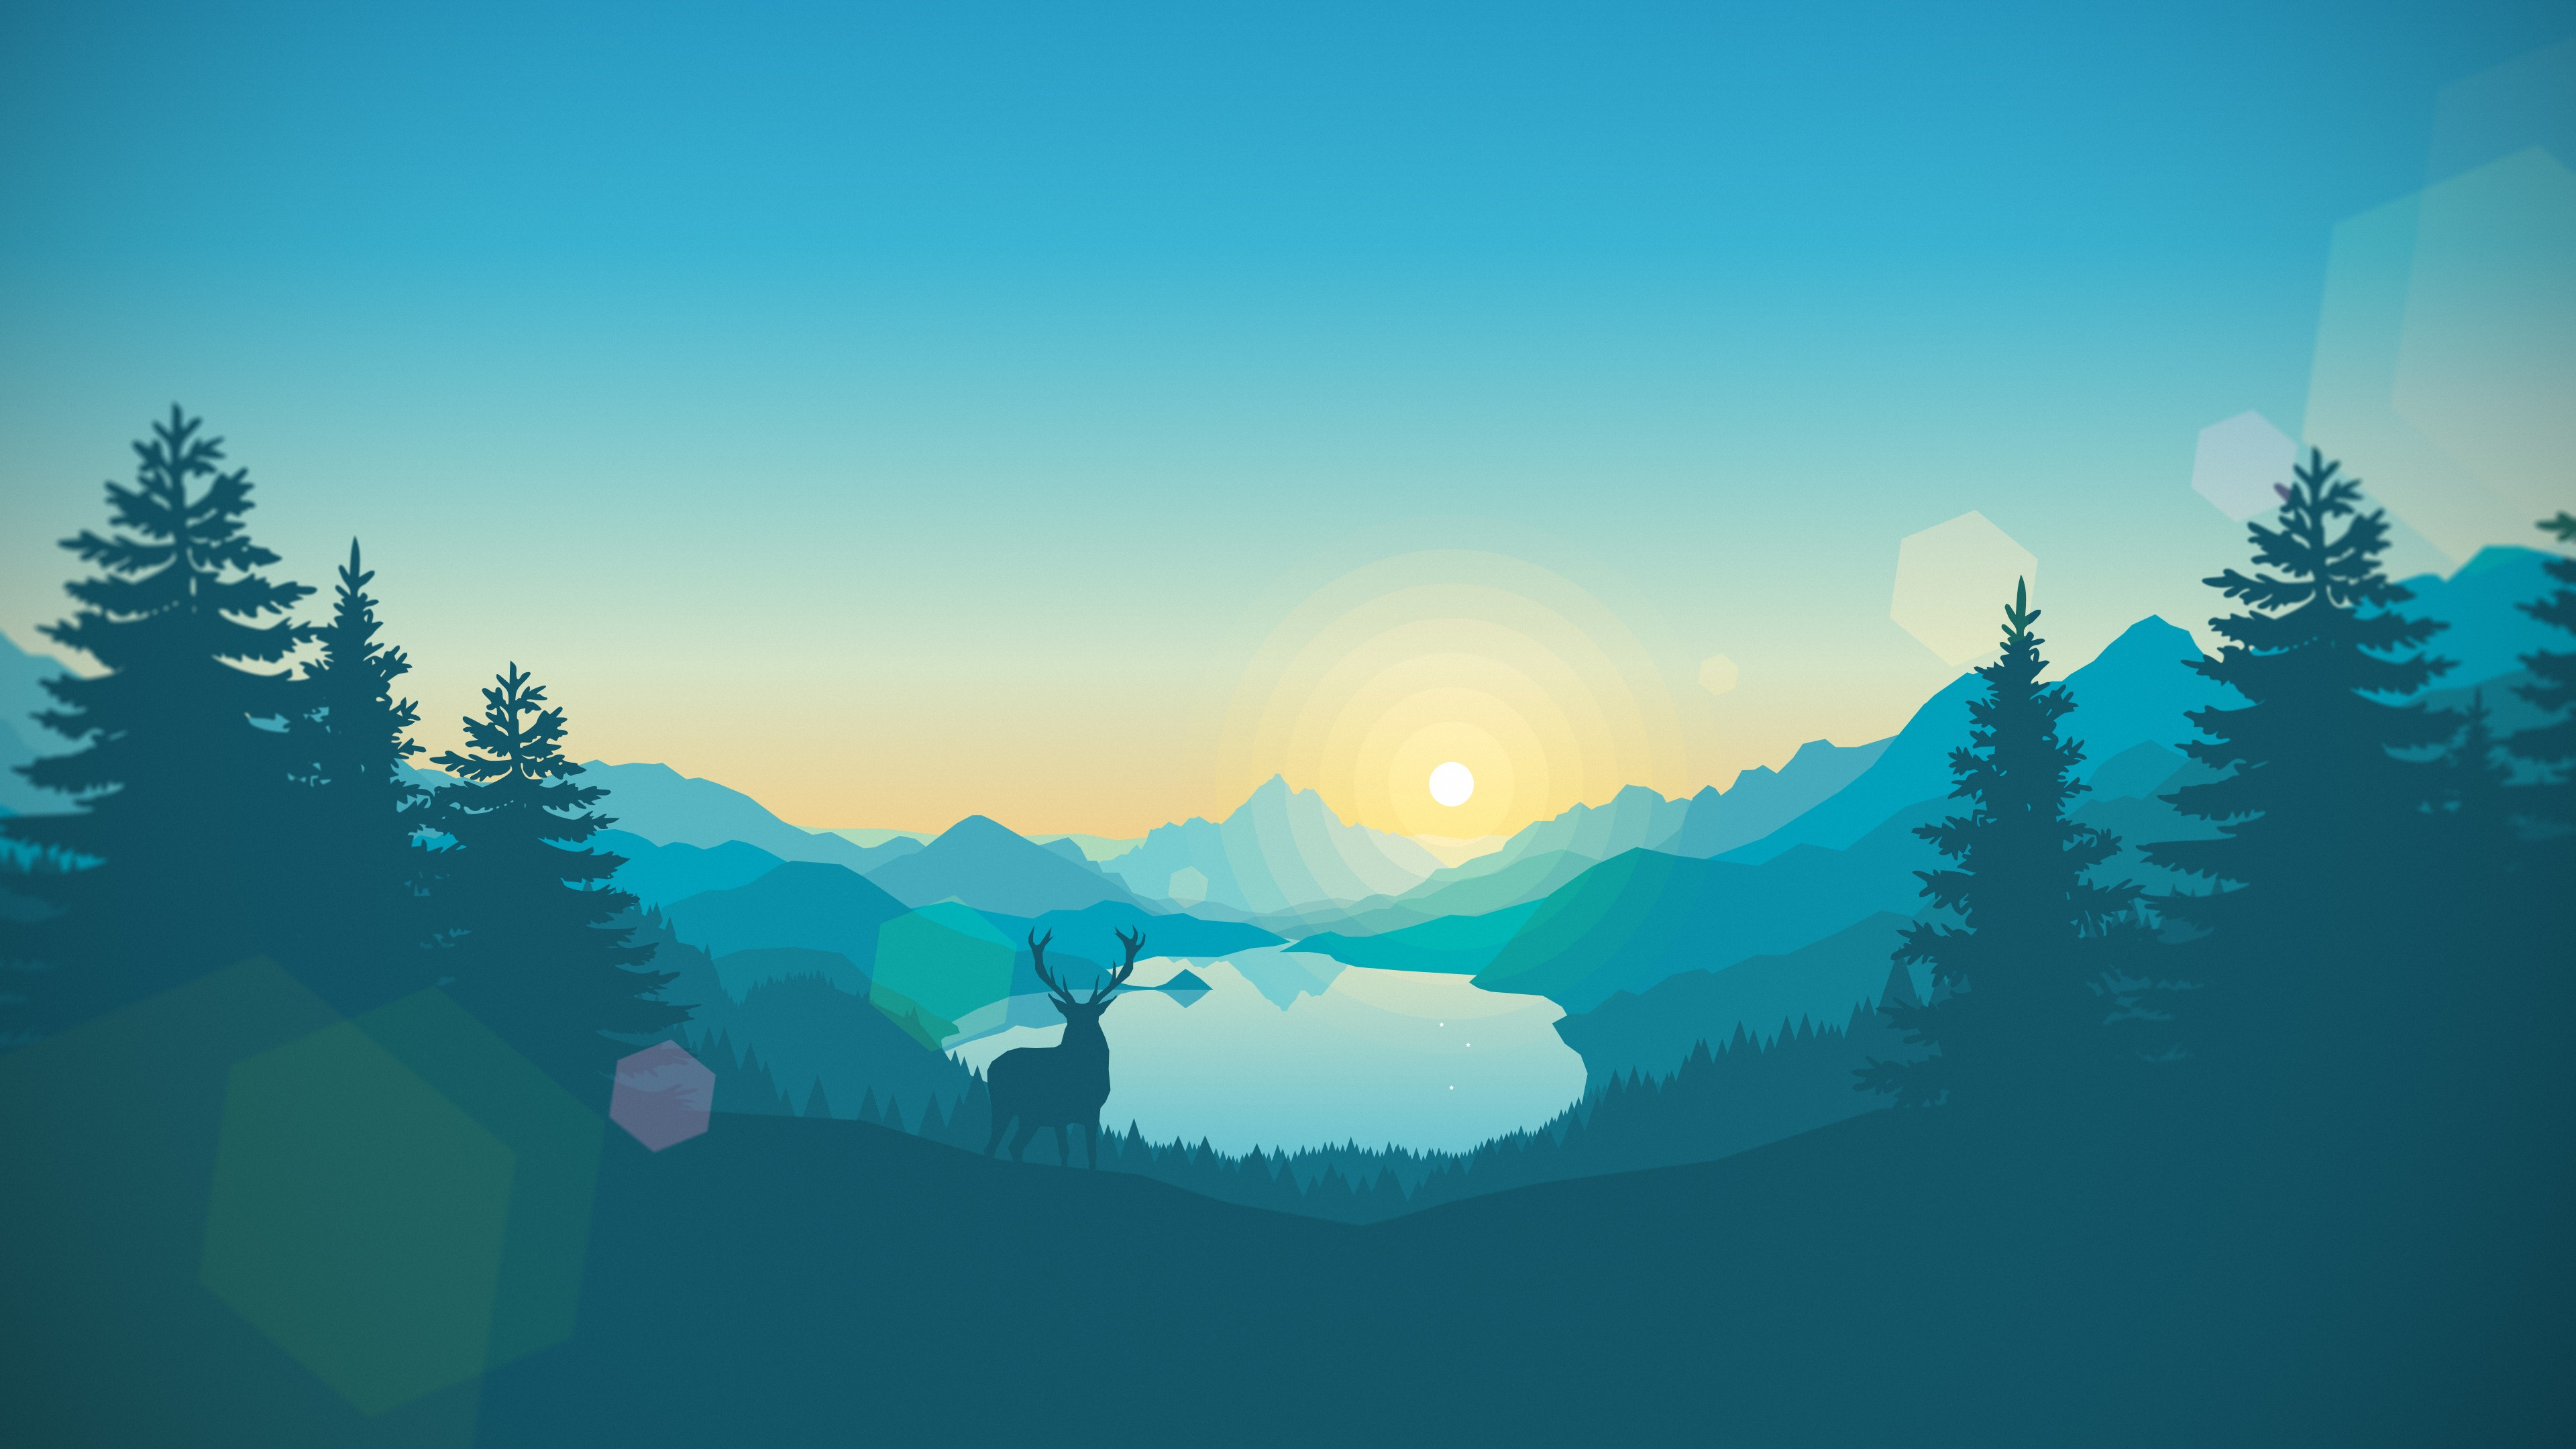 Wallpaper firewatch best games game quest horror pc for Popular wallpapers for home